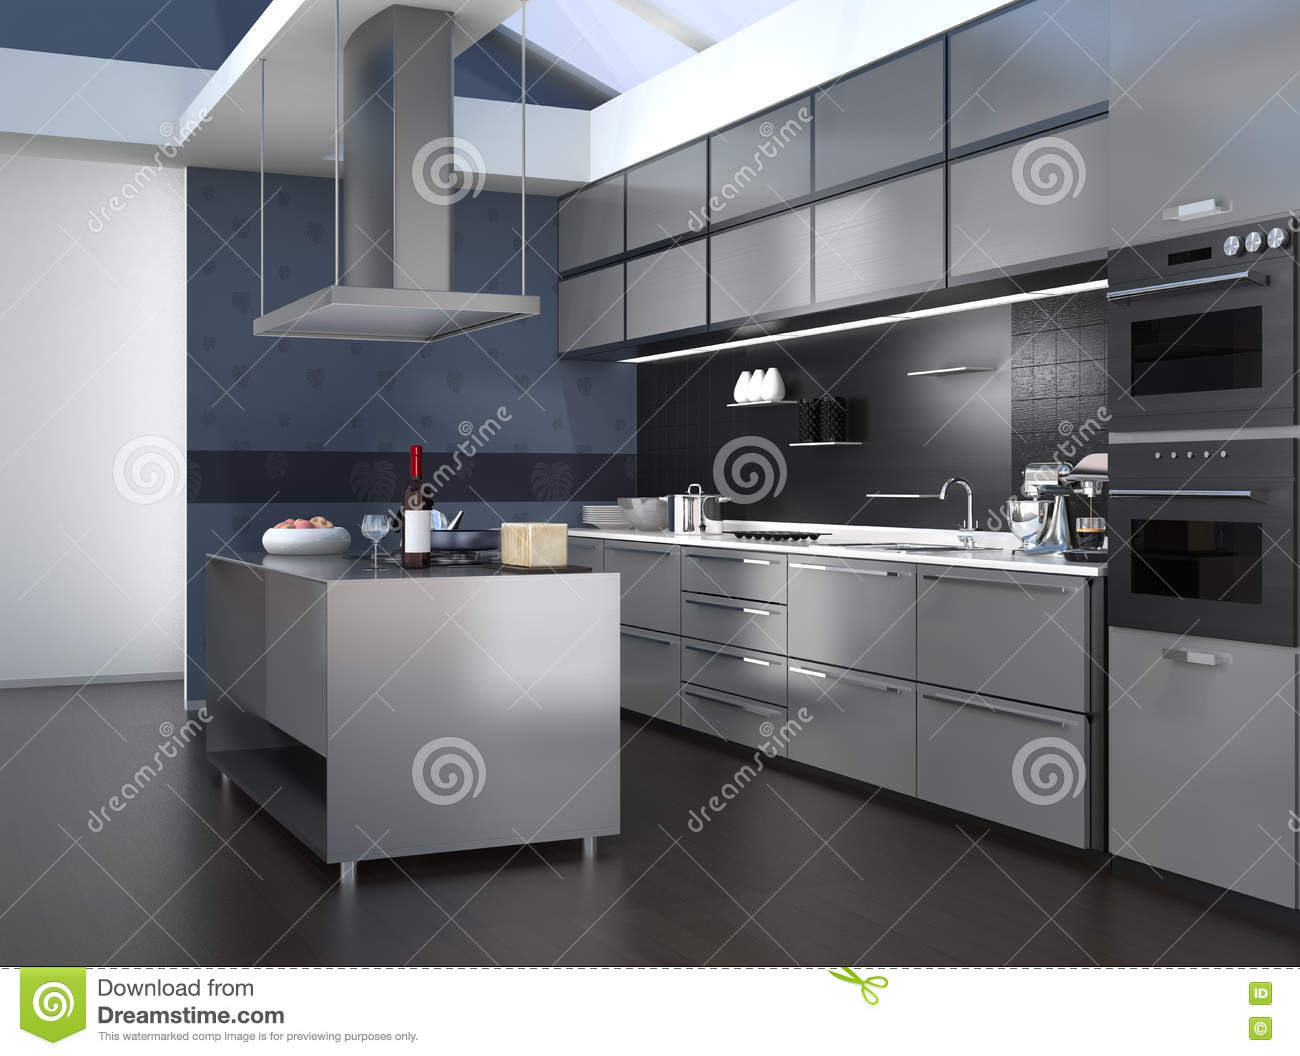 Modern Kitchen Interior With Smart Appliances In Black